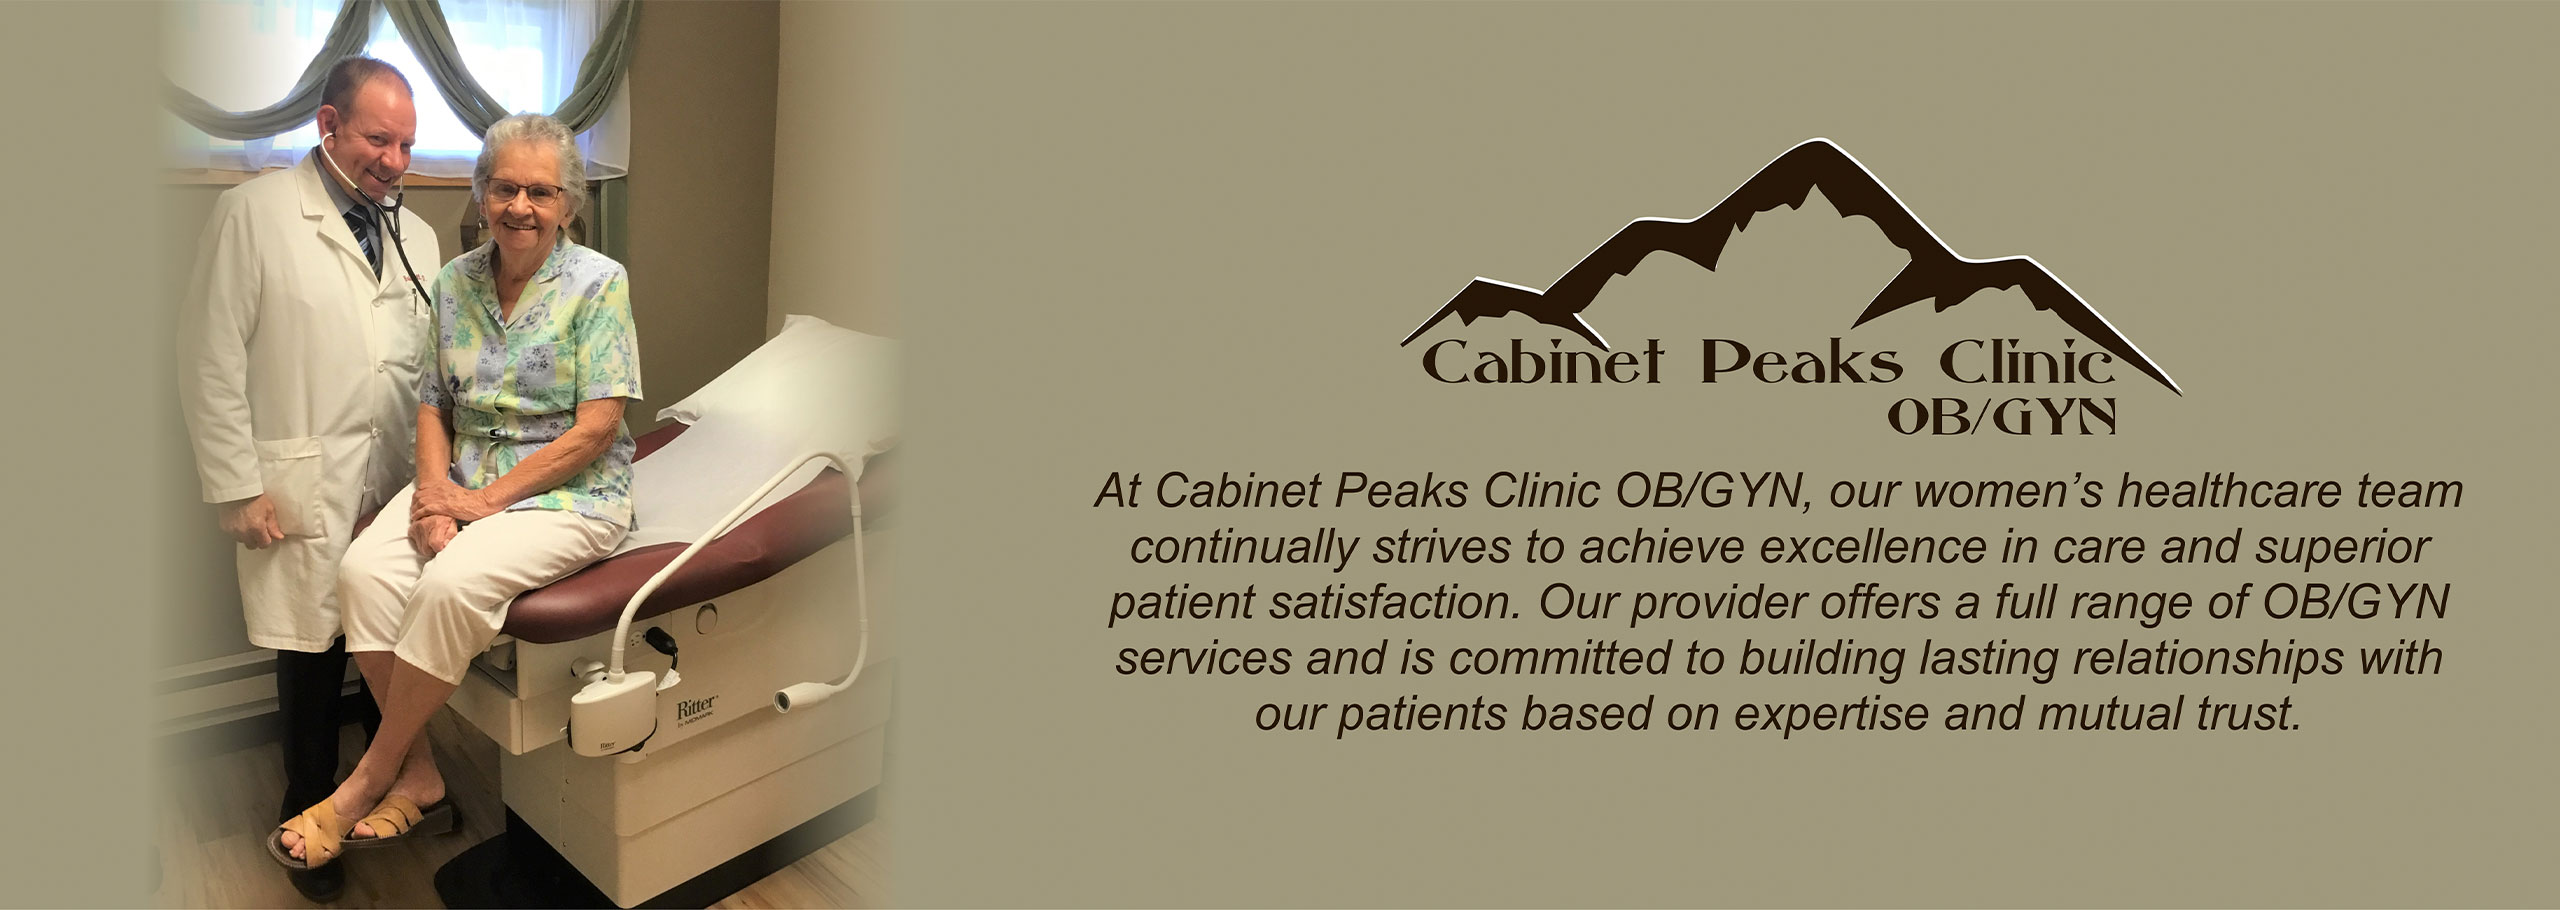 At Cabinet Peaks Clinic OB/GYN our women's healthcare team continually strives to achieve excellence in care and superior patient satisfaction. Our provider offers a  full range of OB/GYN SERVICES and is committed to building lasting relationships with our patients based on expertise and mutual trust.